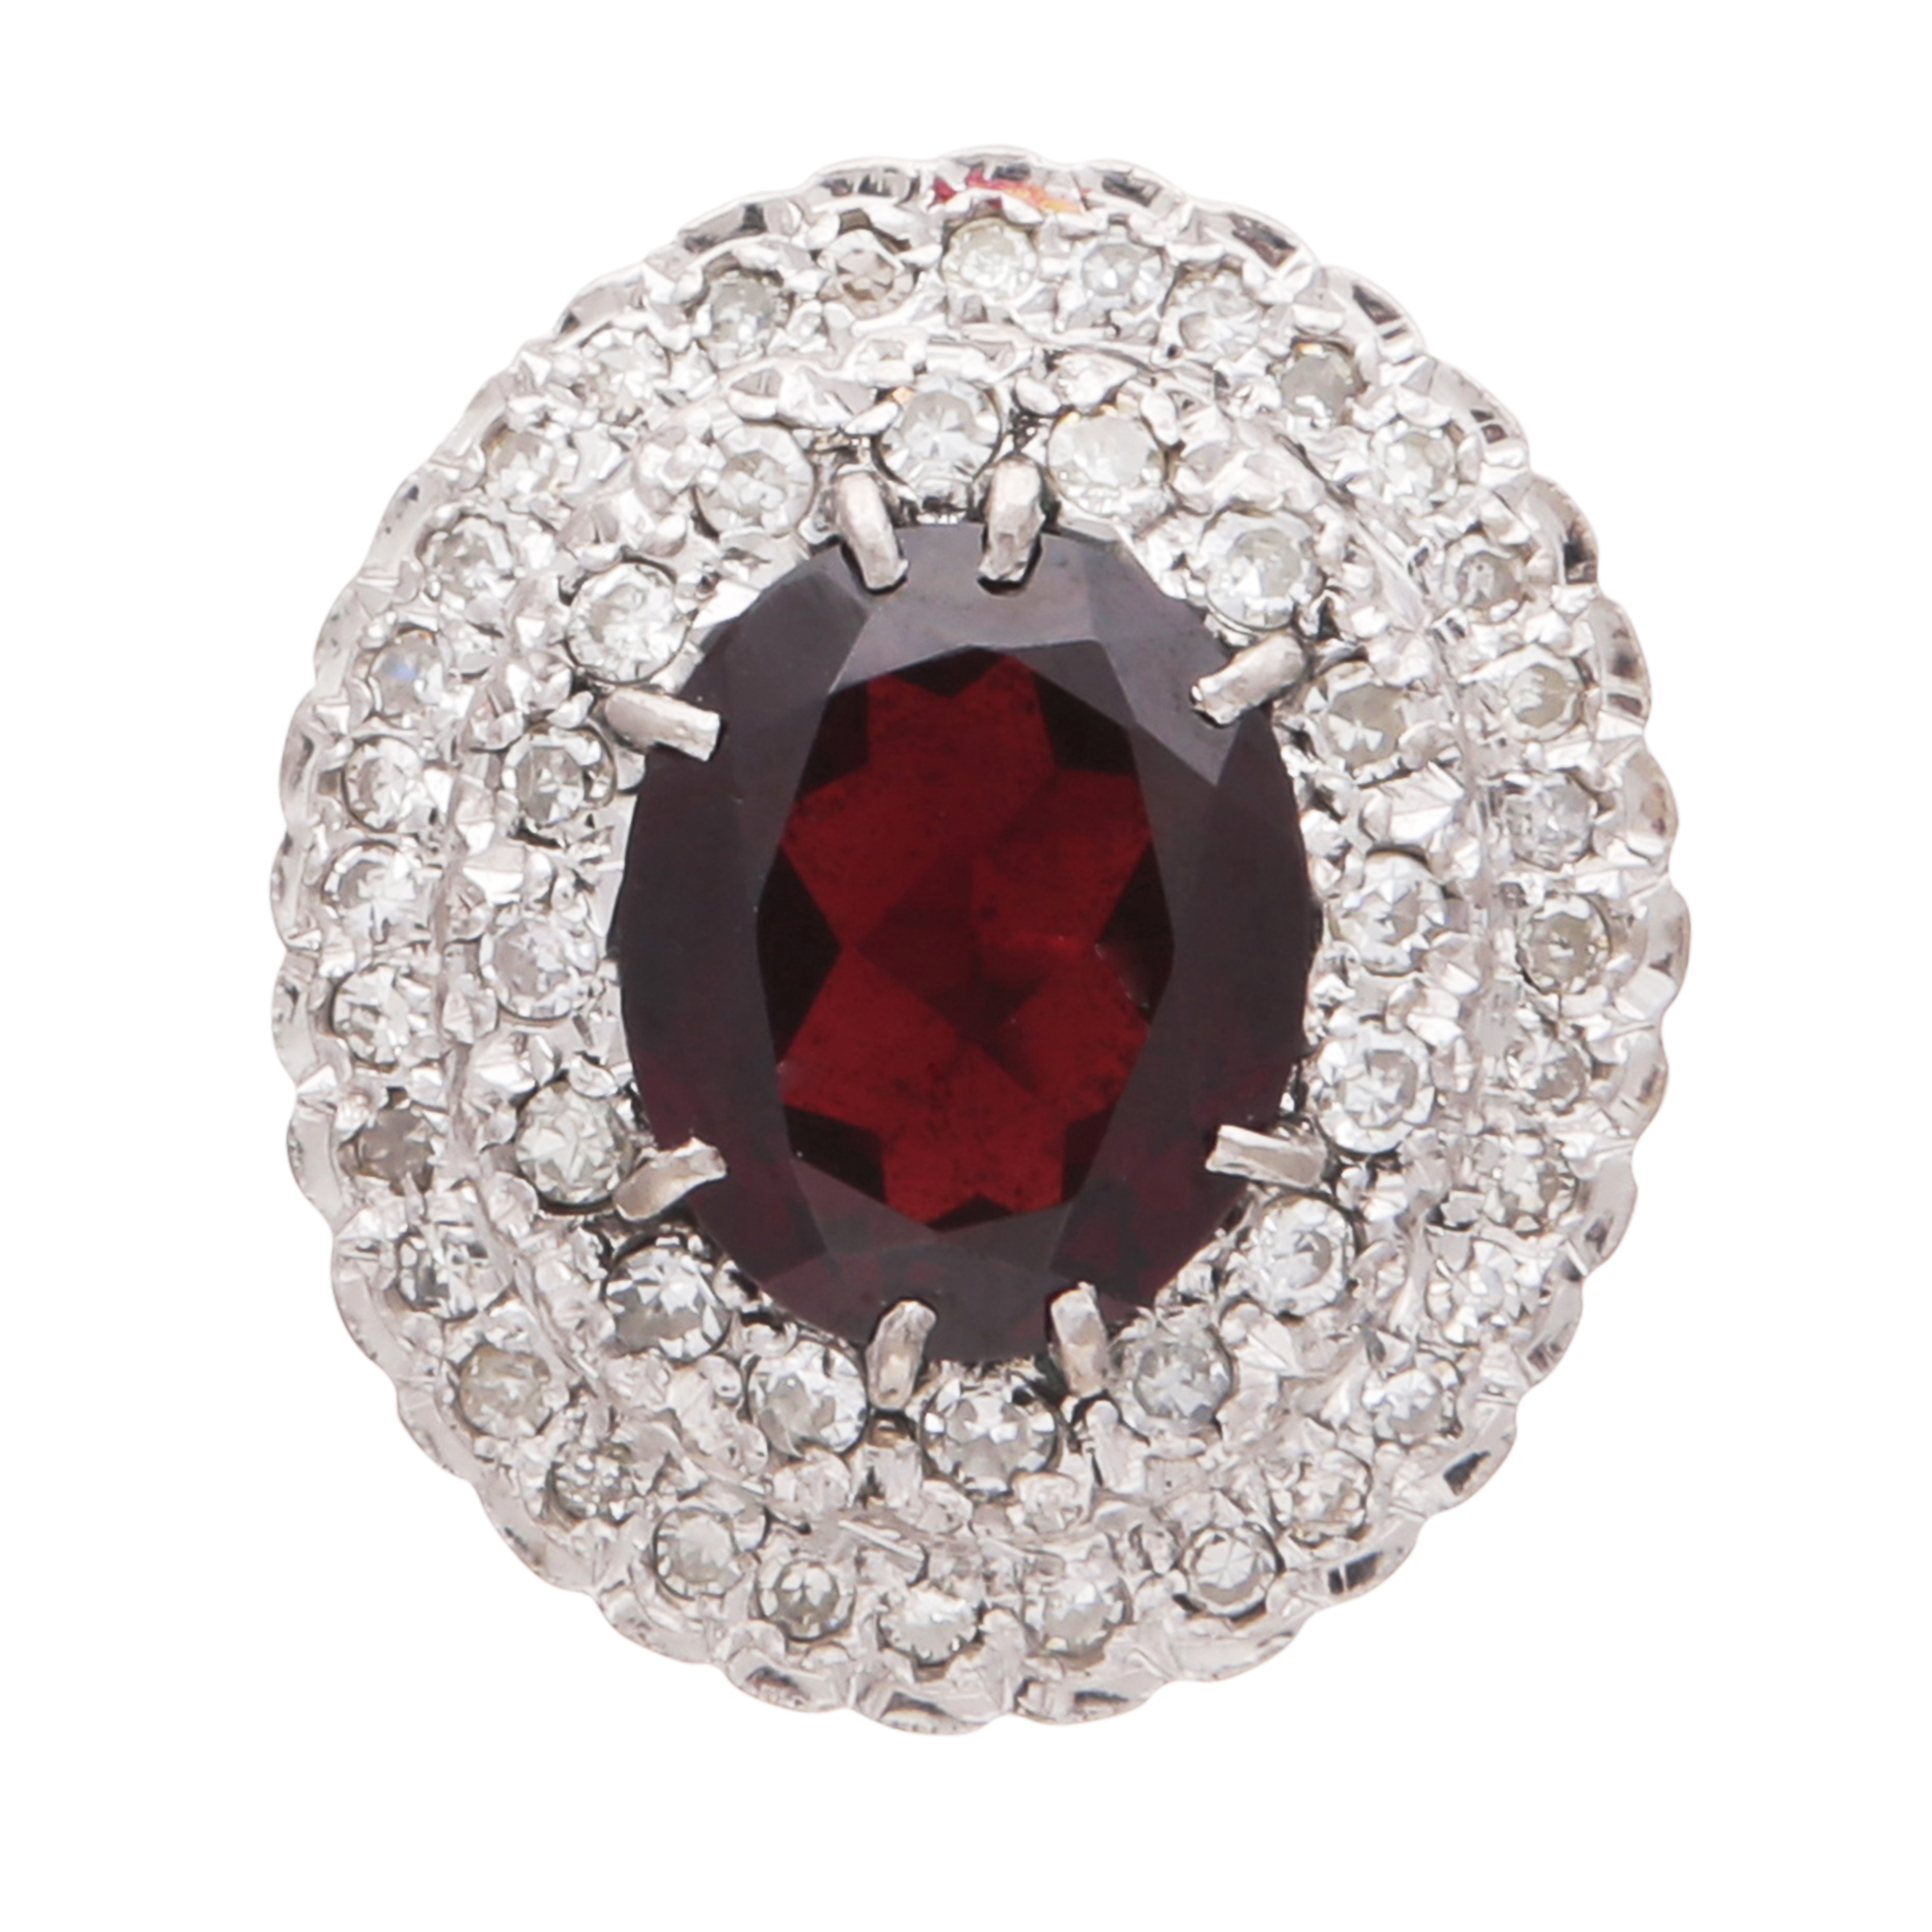 Los 216 - A garnet and diamond cluster ring in 18ct yellow gold, the large oval cut garnet weighing